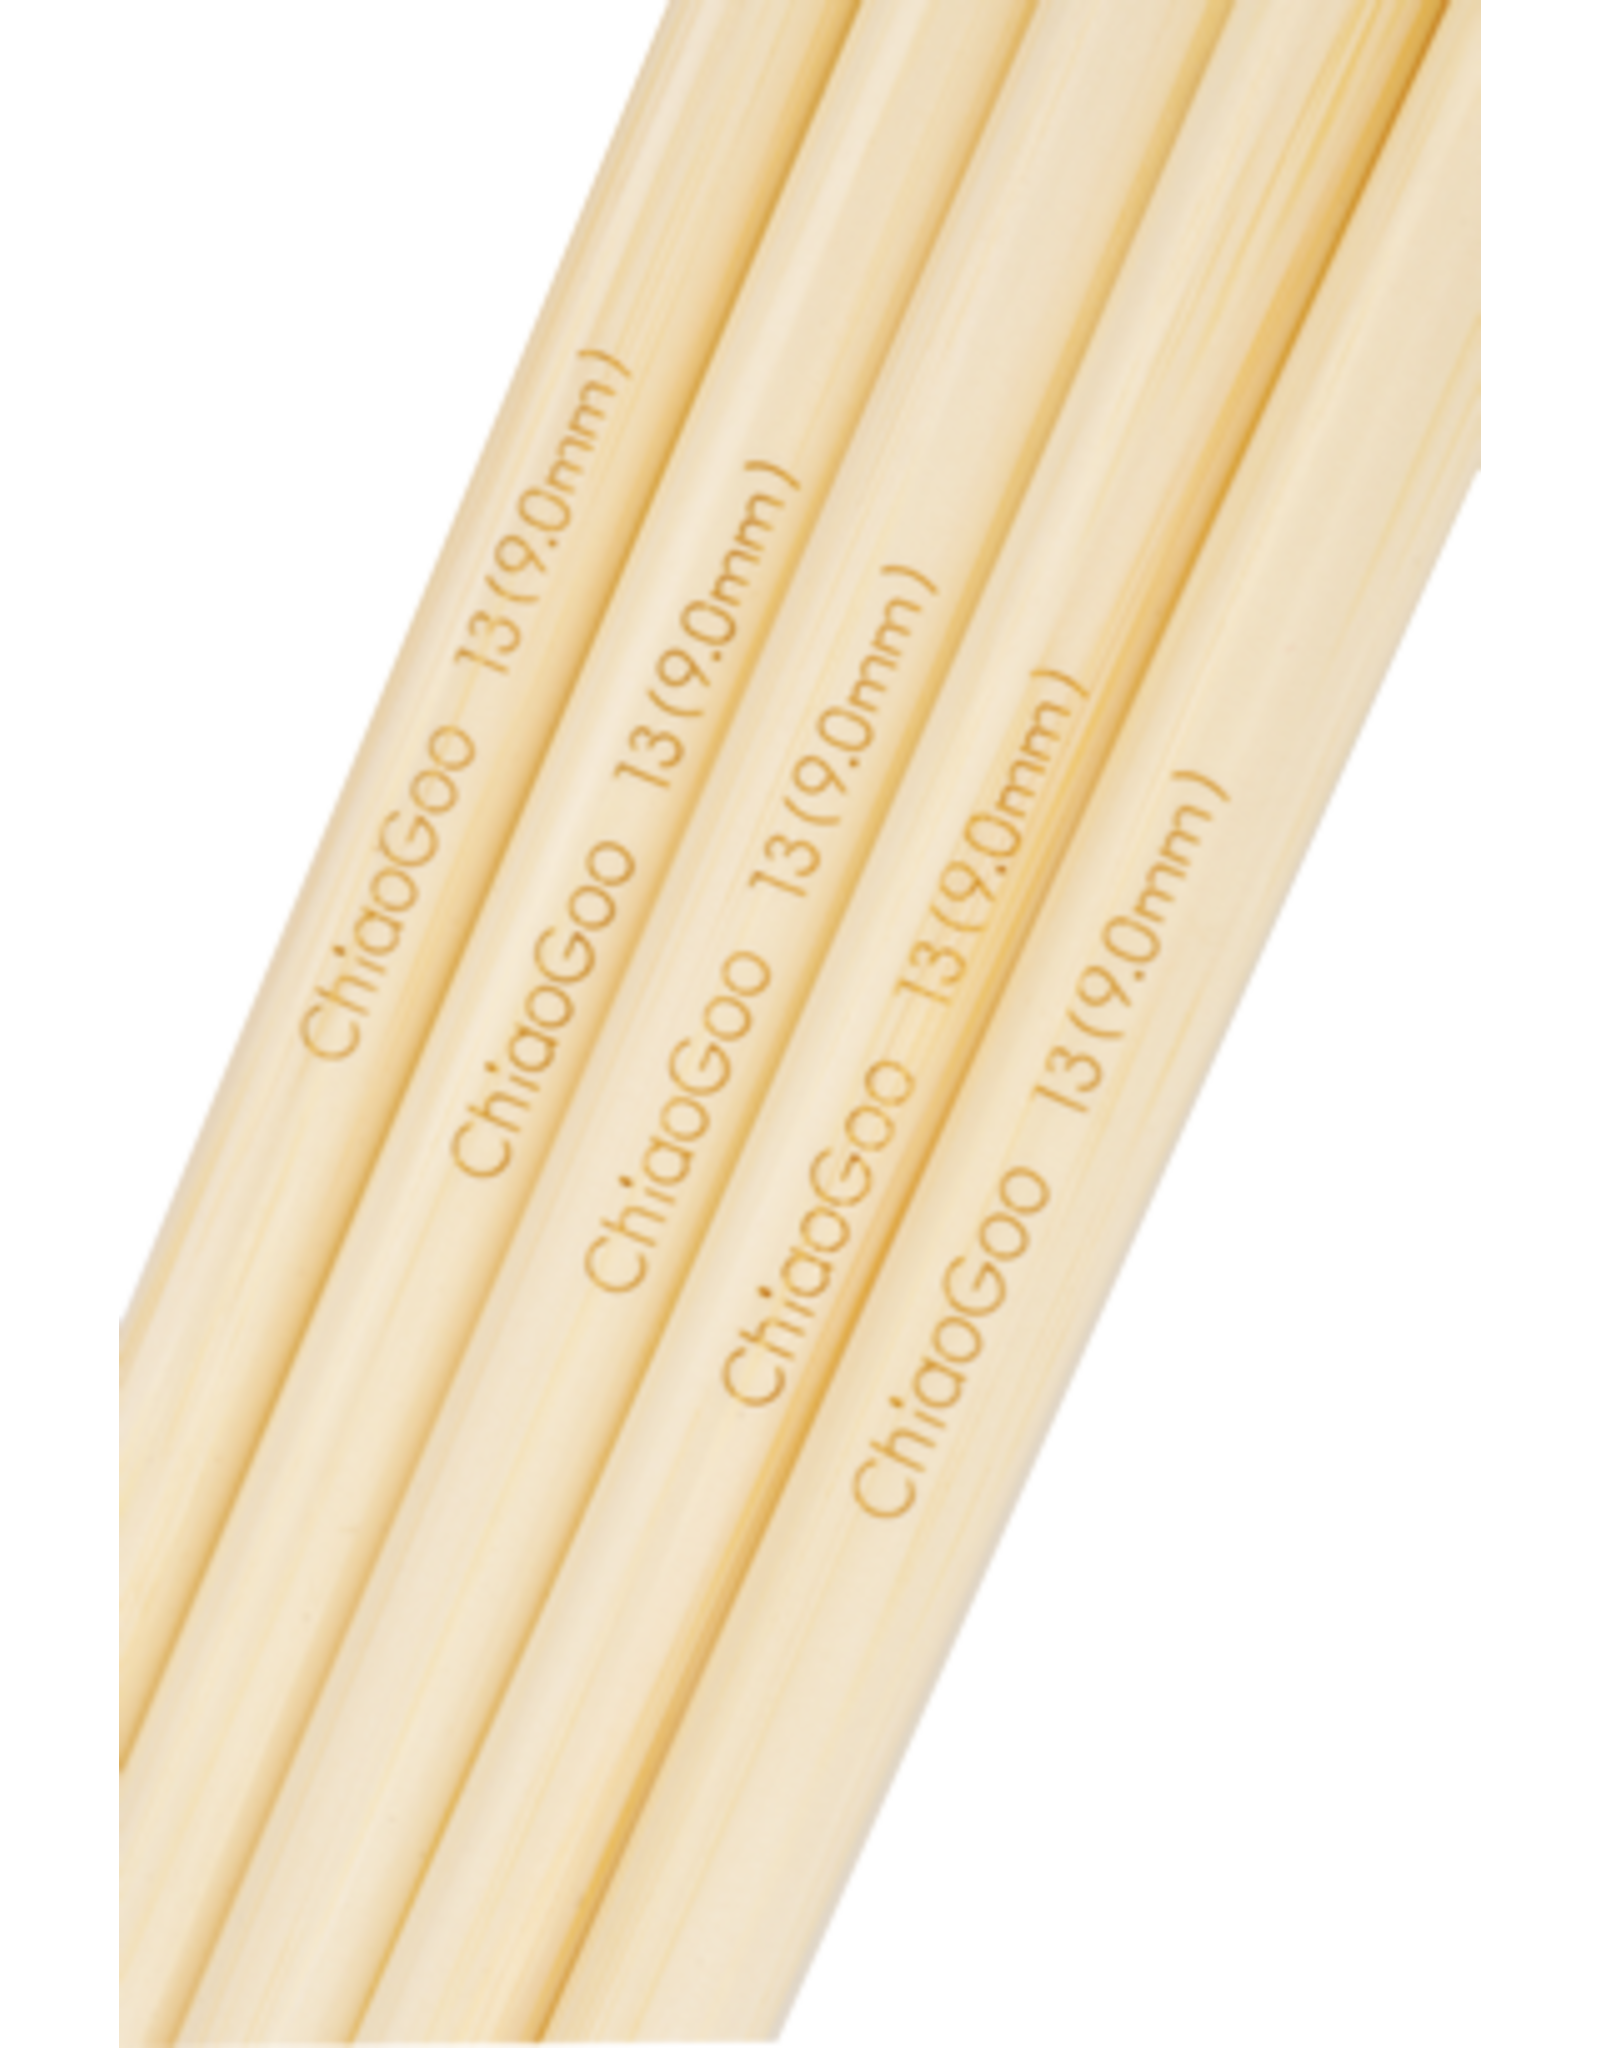 ChiaoGoo ChiaoGoo Bamboo Double Pointed Needles (DPNs)